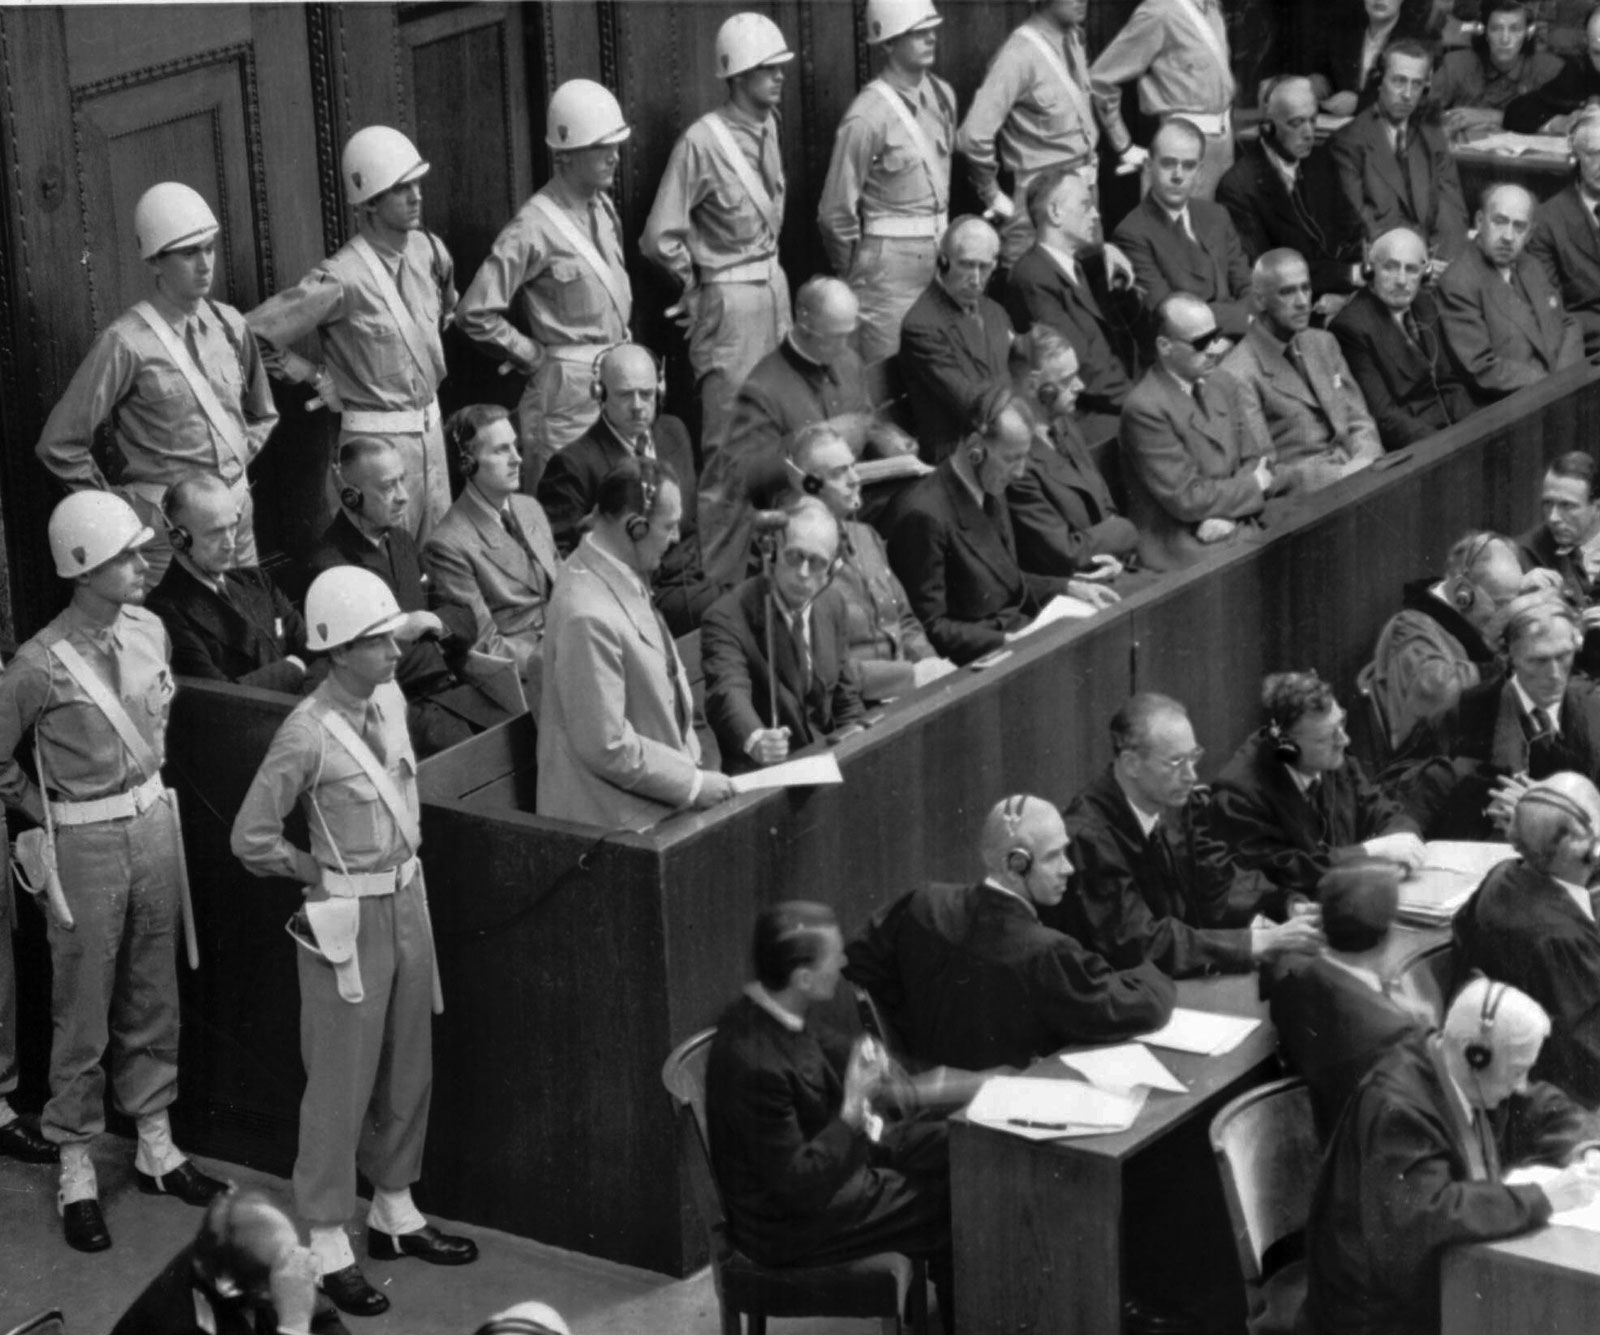 Search thousands of historical documents from the Nuremberg trials.